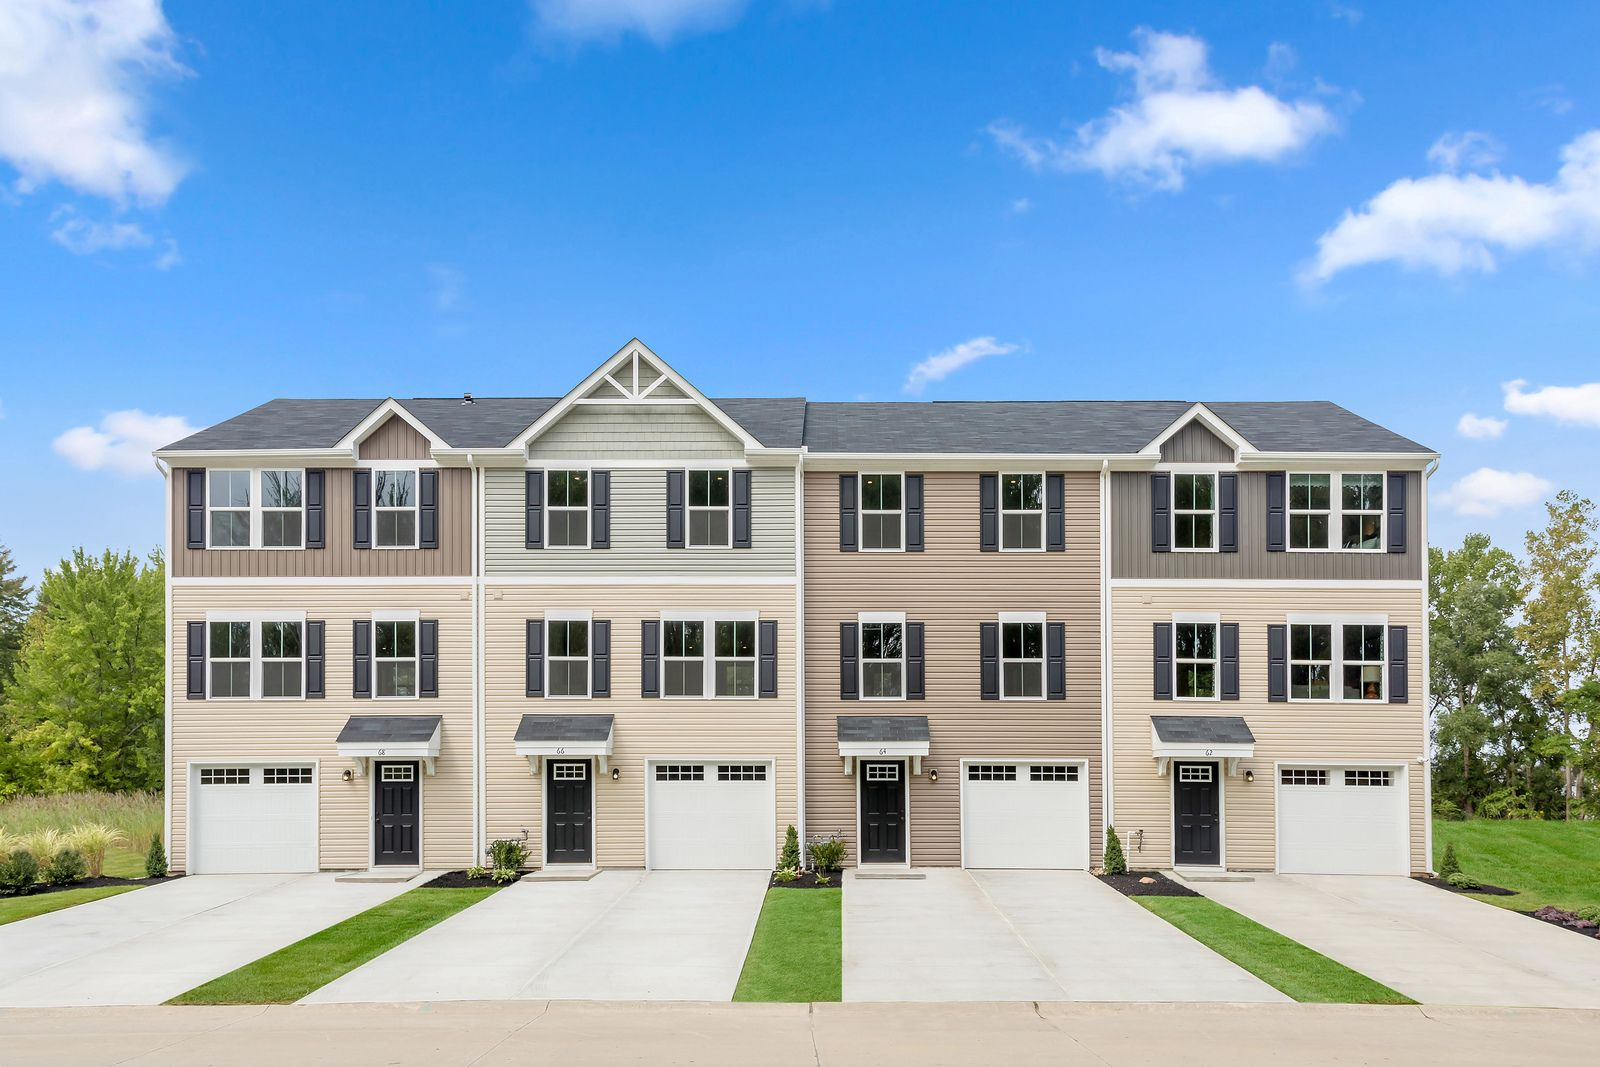 Why rent? Own an affordable townhome for the same or less in Simpsonville!:Own a new home minutes to Downtown Simpsonville and interstate access.